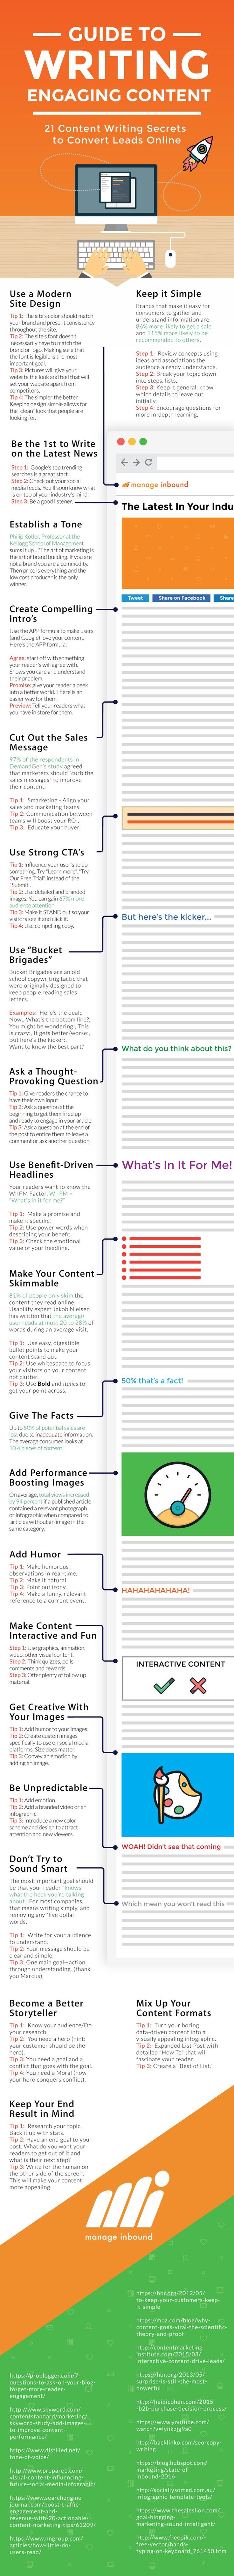 21 Actionable Tips to Create Website Content Your Visitors Will Love [Infographic] - http://topseosoft.com/21-actionable-tips-to-create-website-content-your-visitors-will-love-infographic/